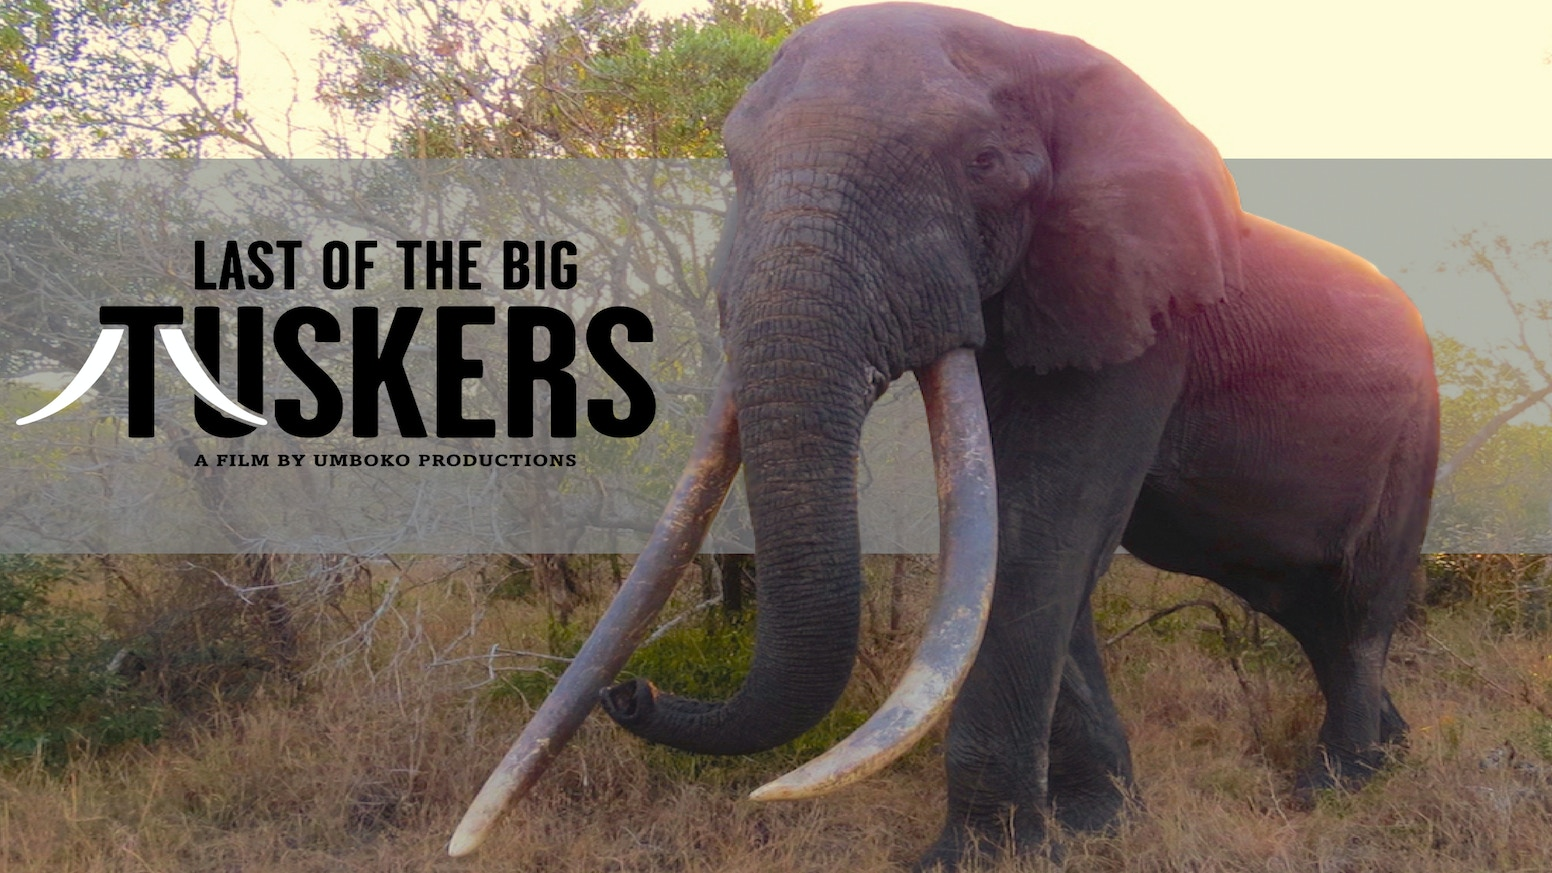 A documentary film about the largest elephants on earth and what is being done to ensure their survival.